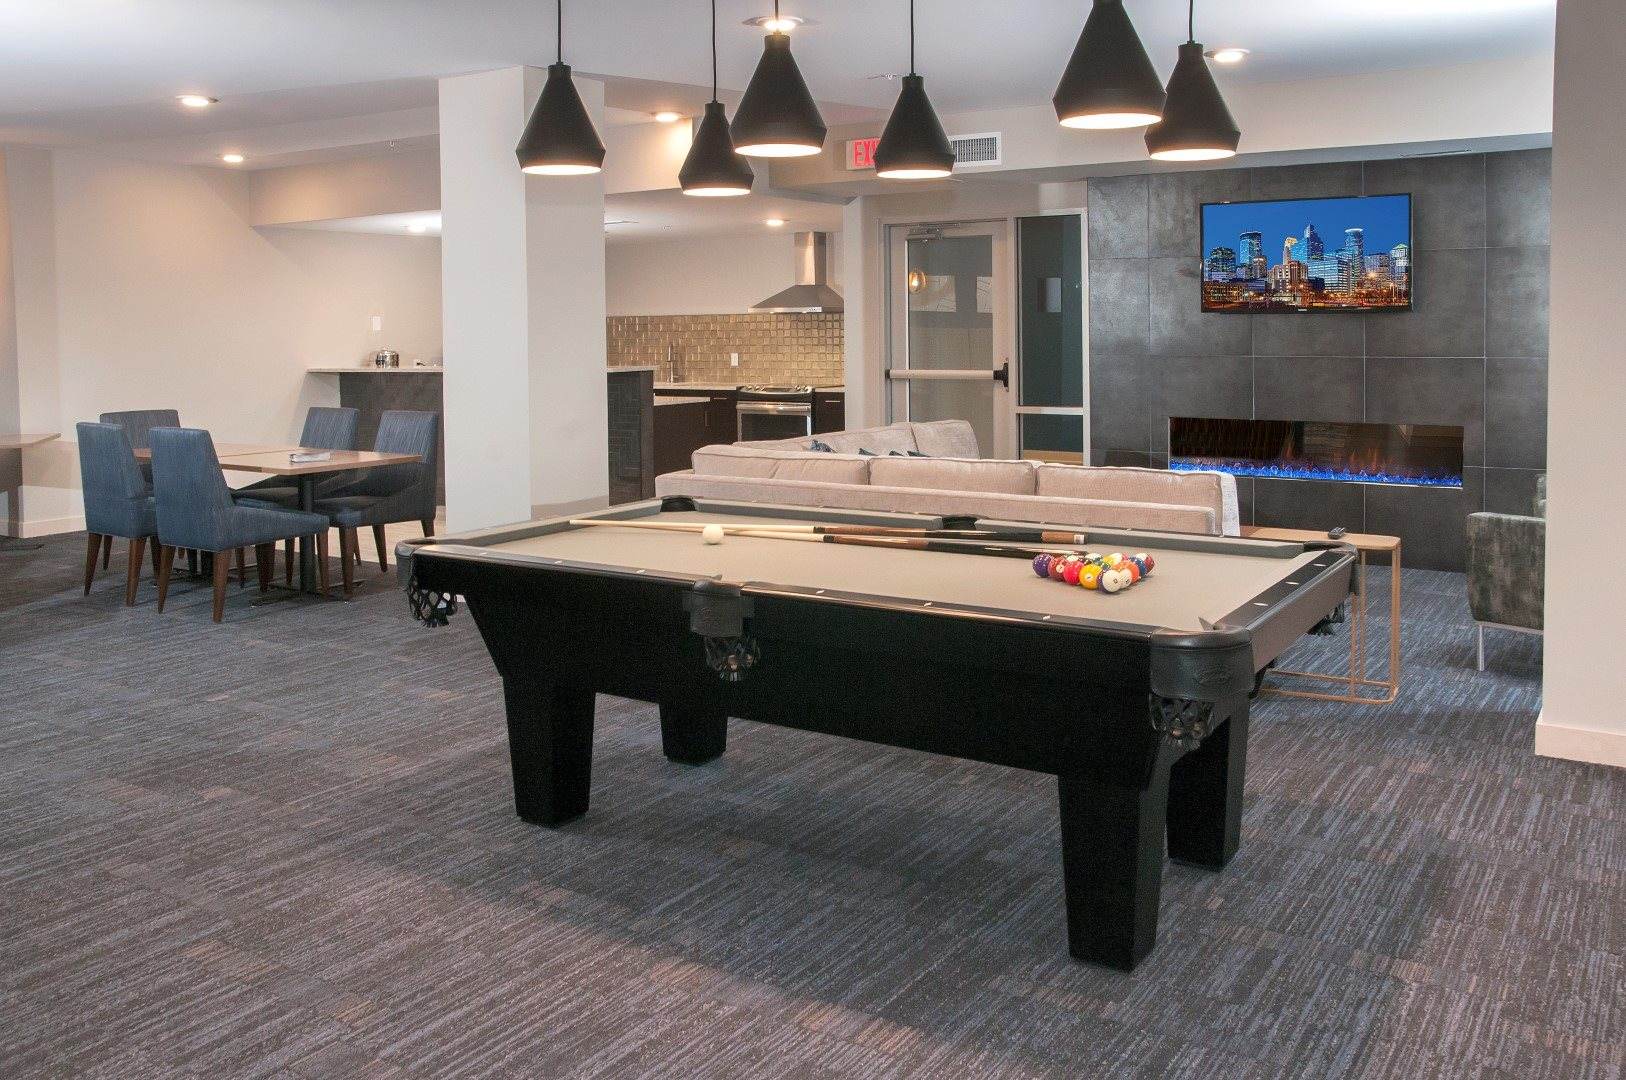 Game room with billiards and shuffleboard tables The Axis